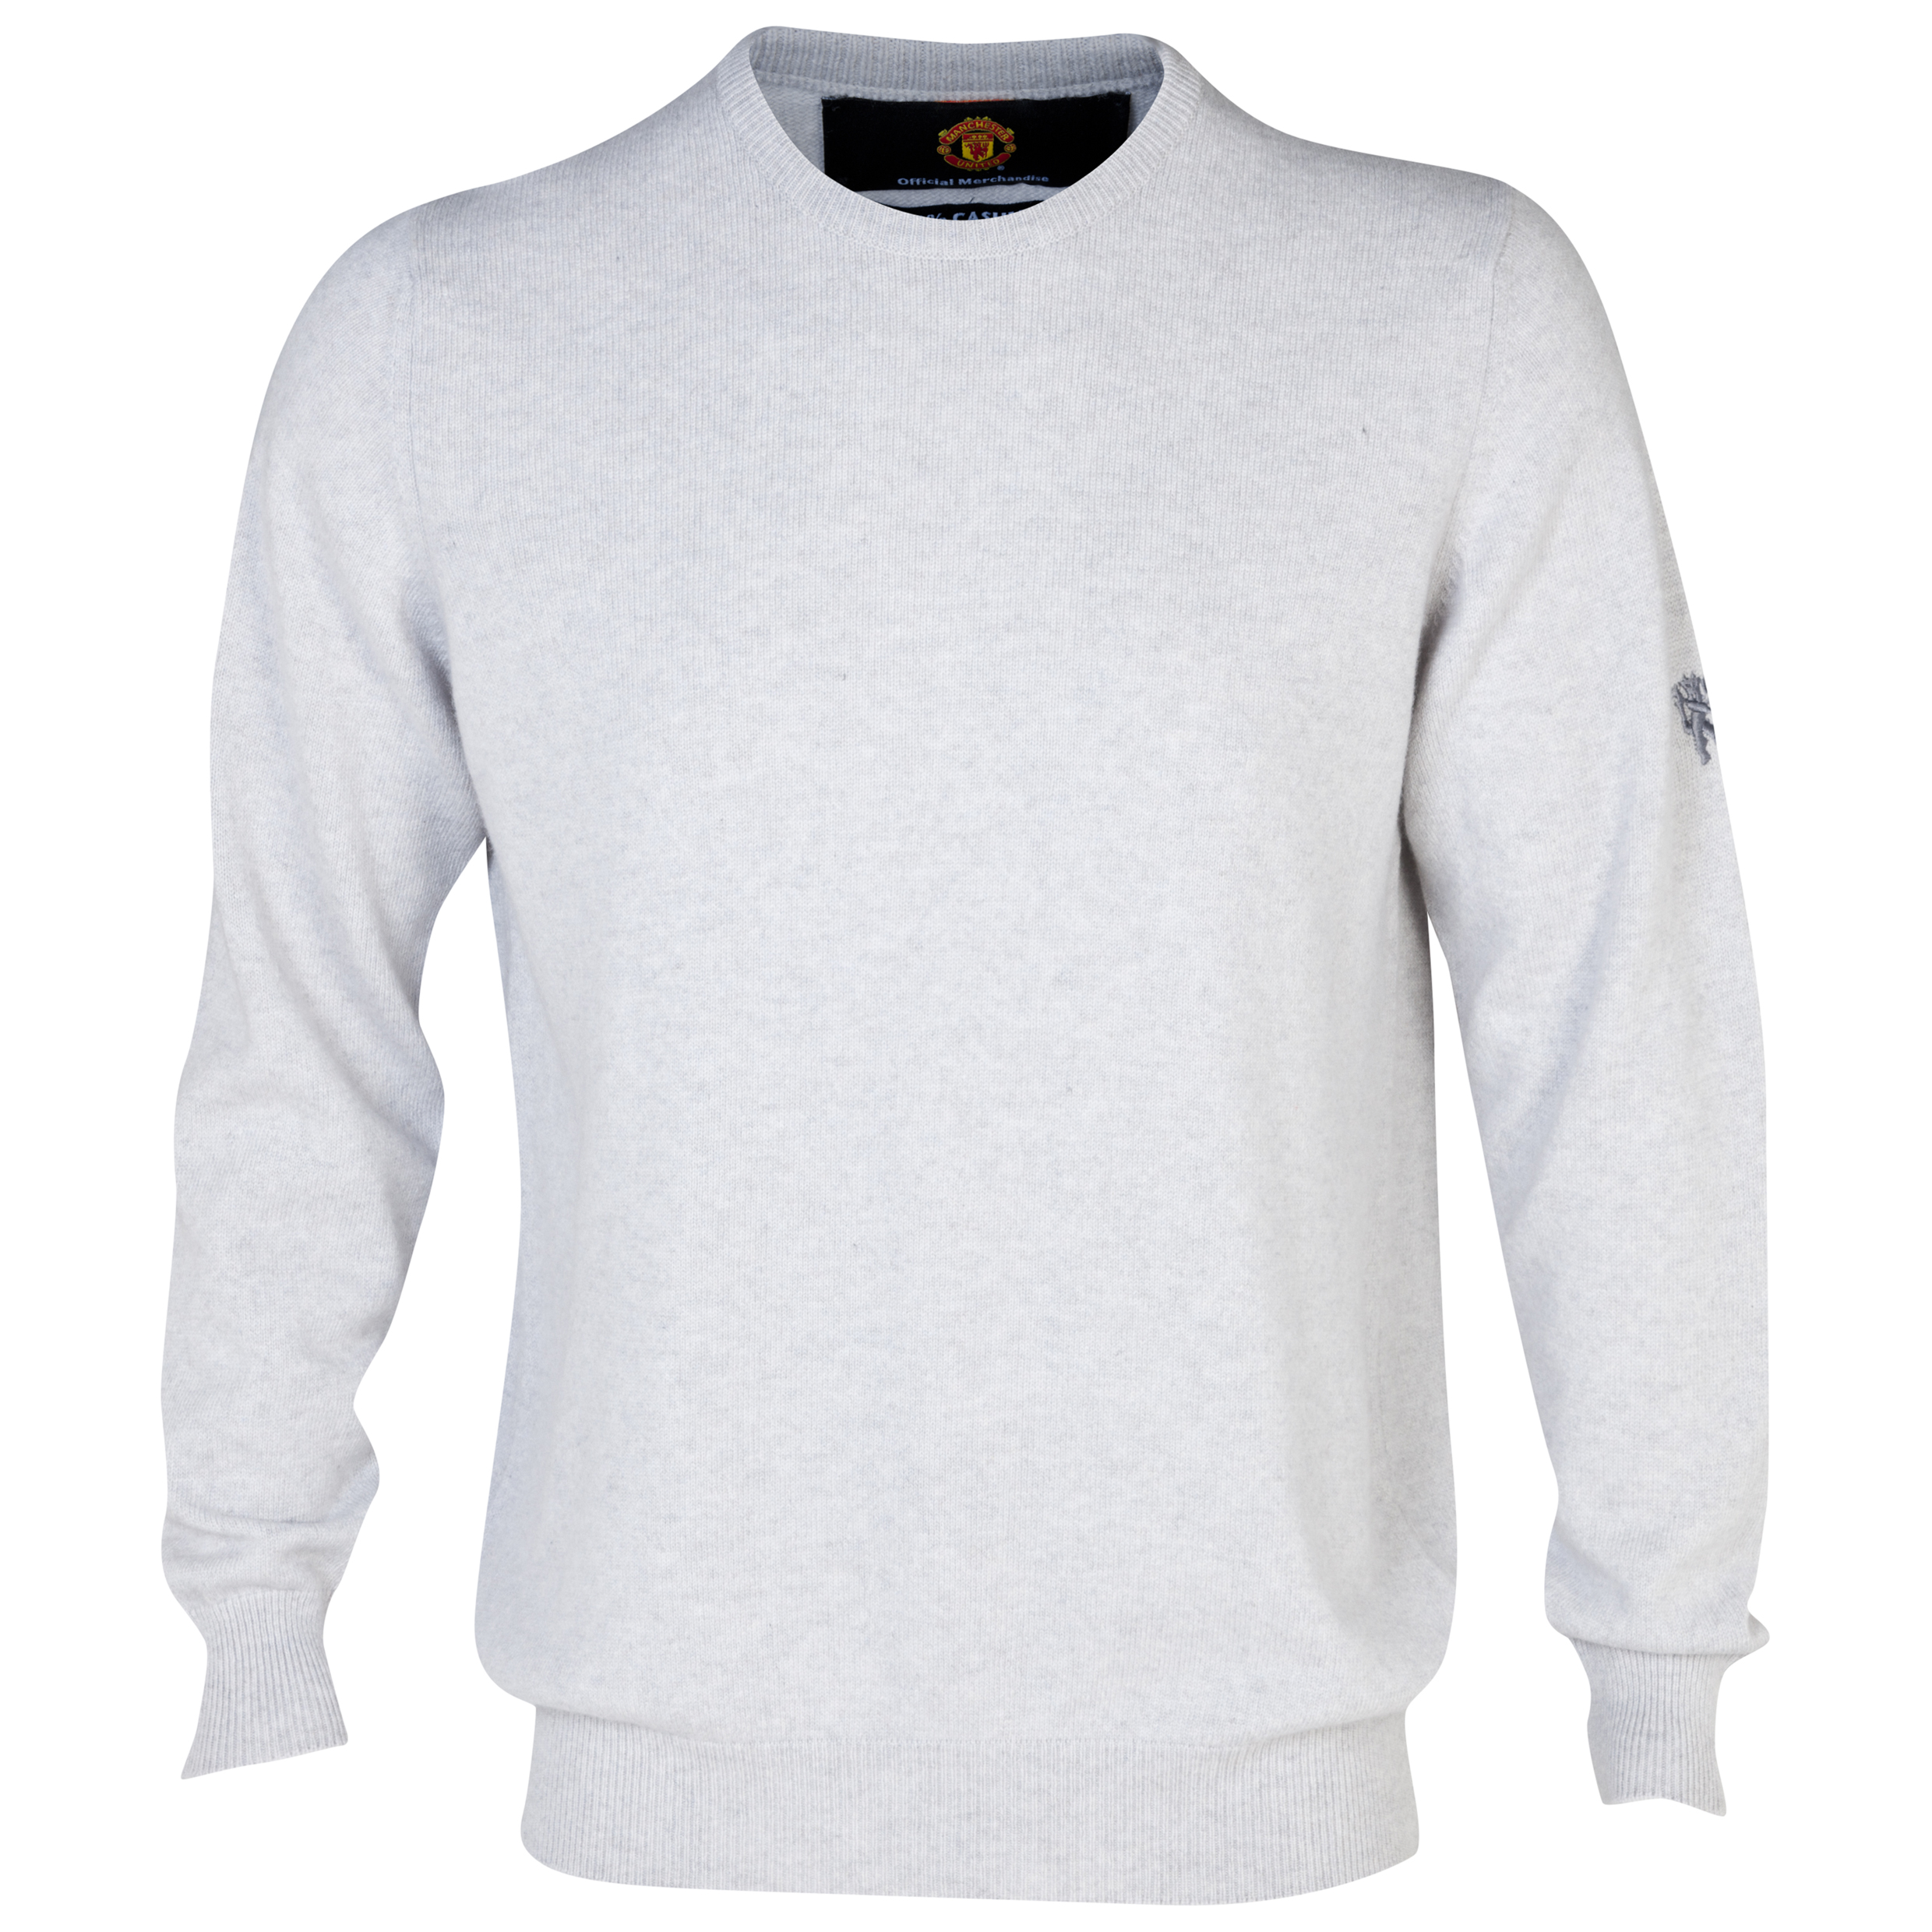 Manchester United Cashmere Crew Neck Sweater - Mens Cream